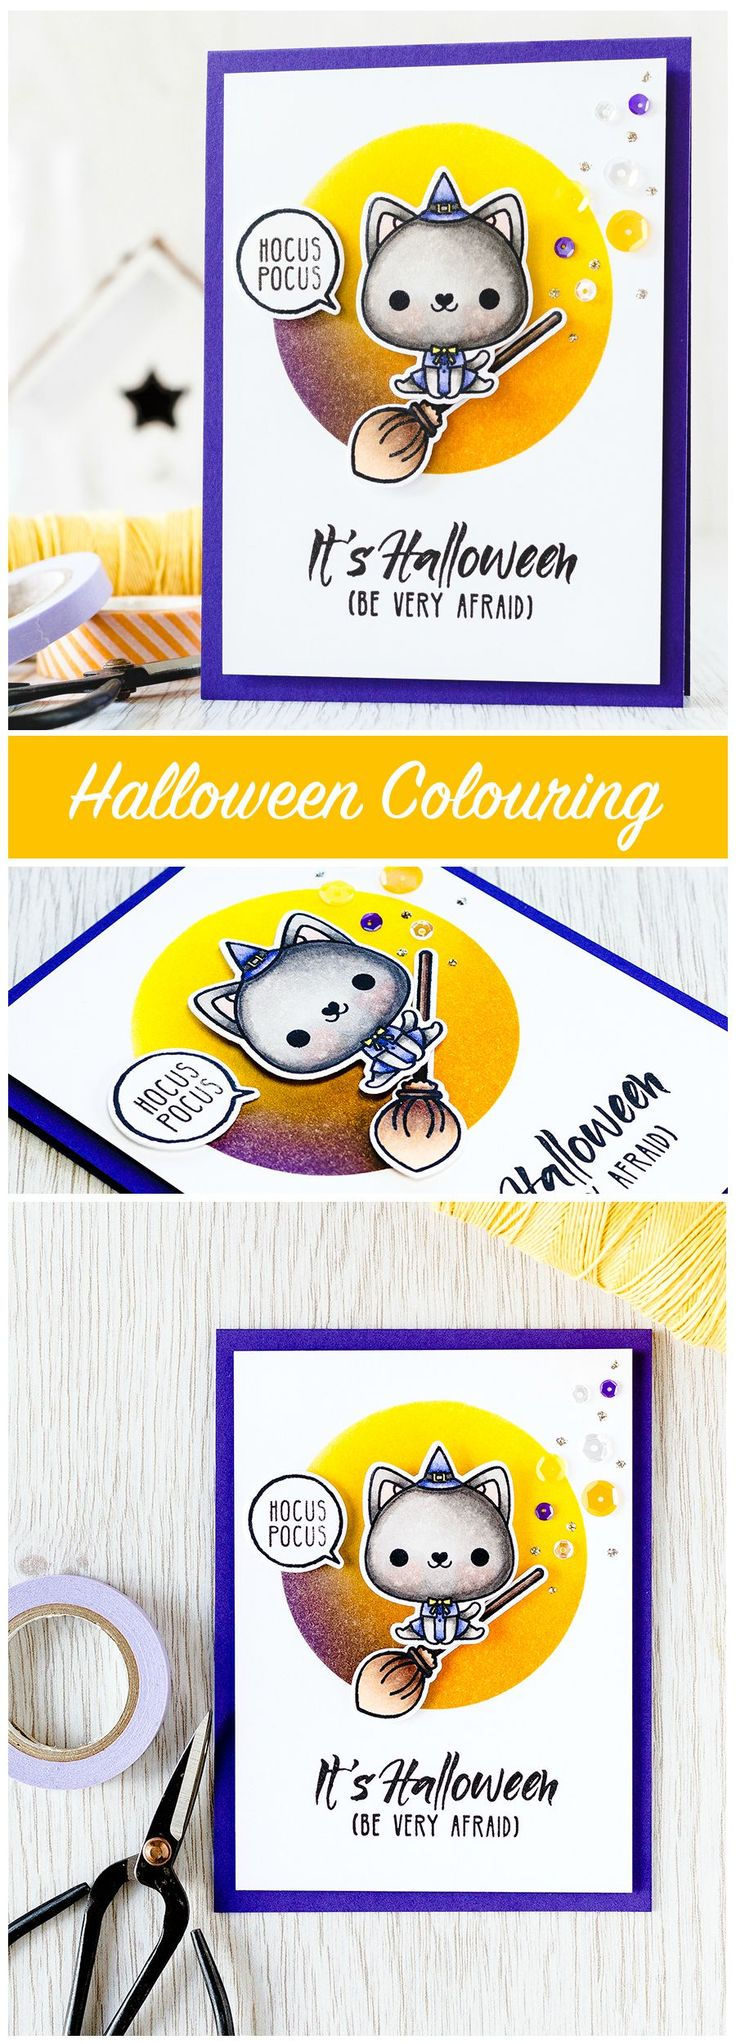 407 Best Halloween Images On Pinterest Halloween Cards Cards And